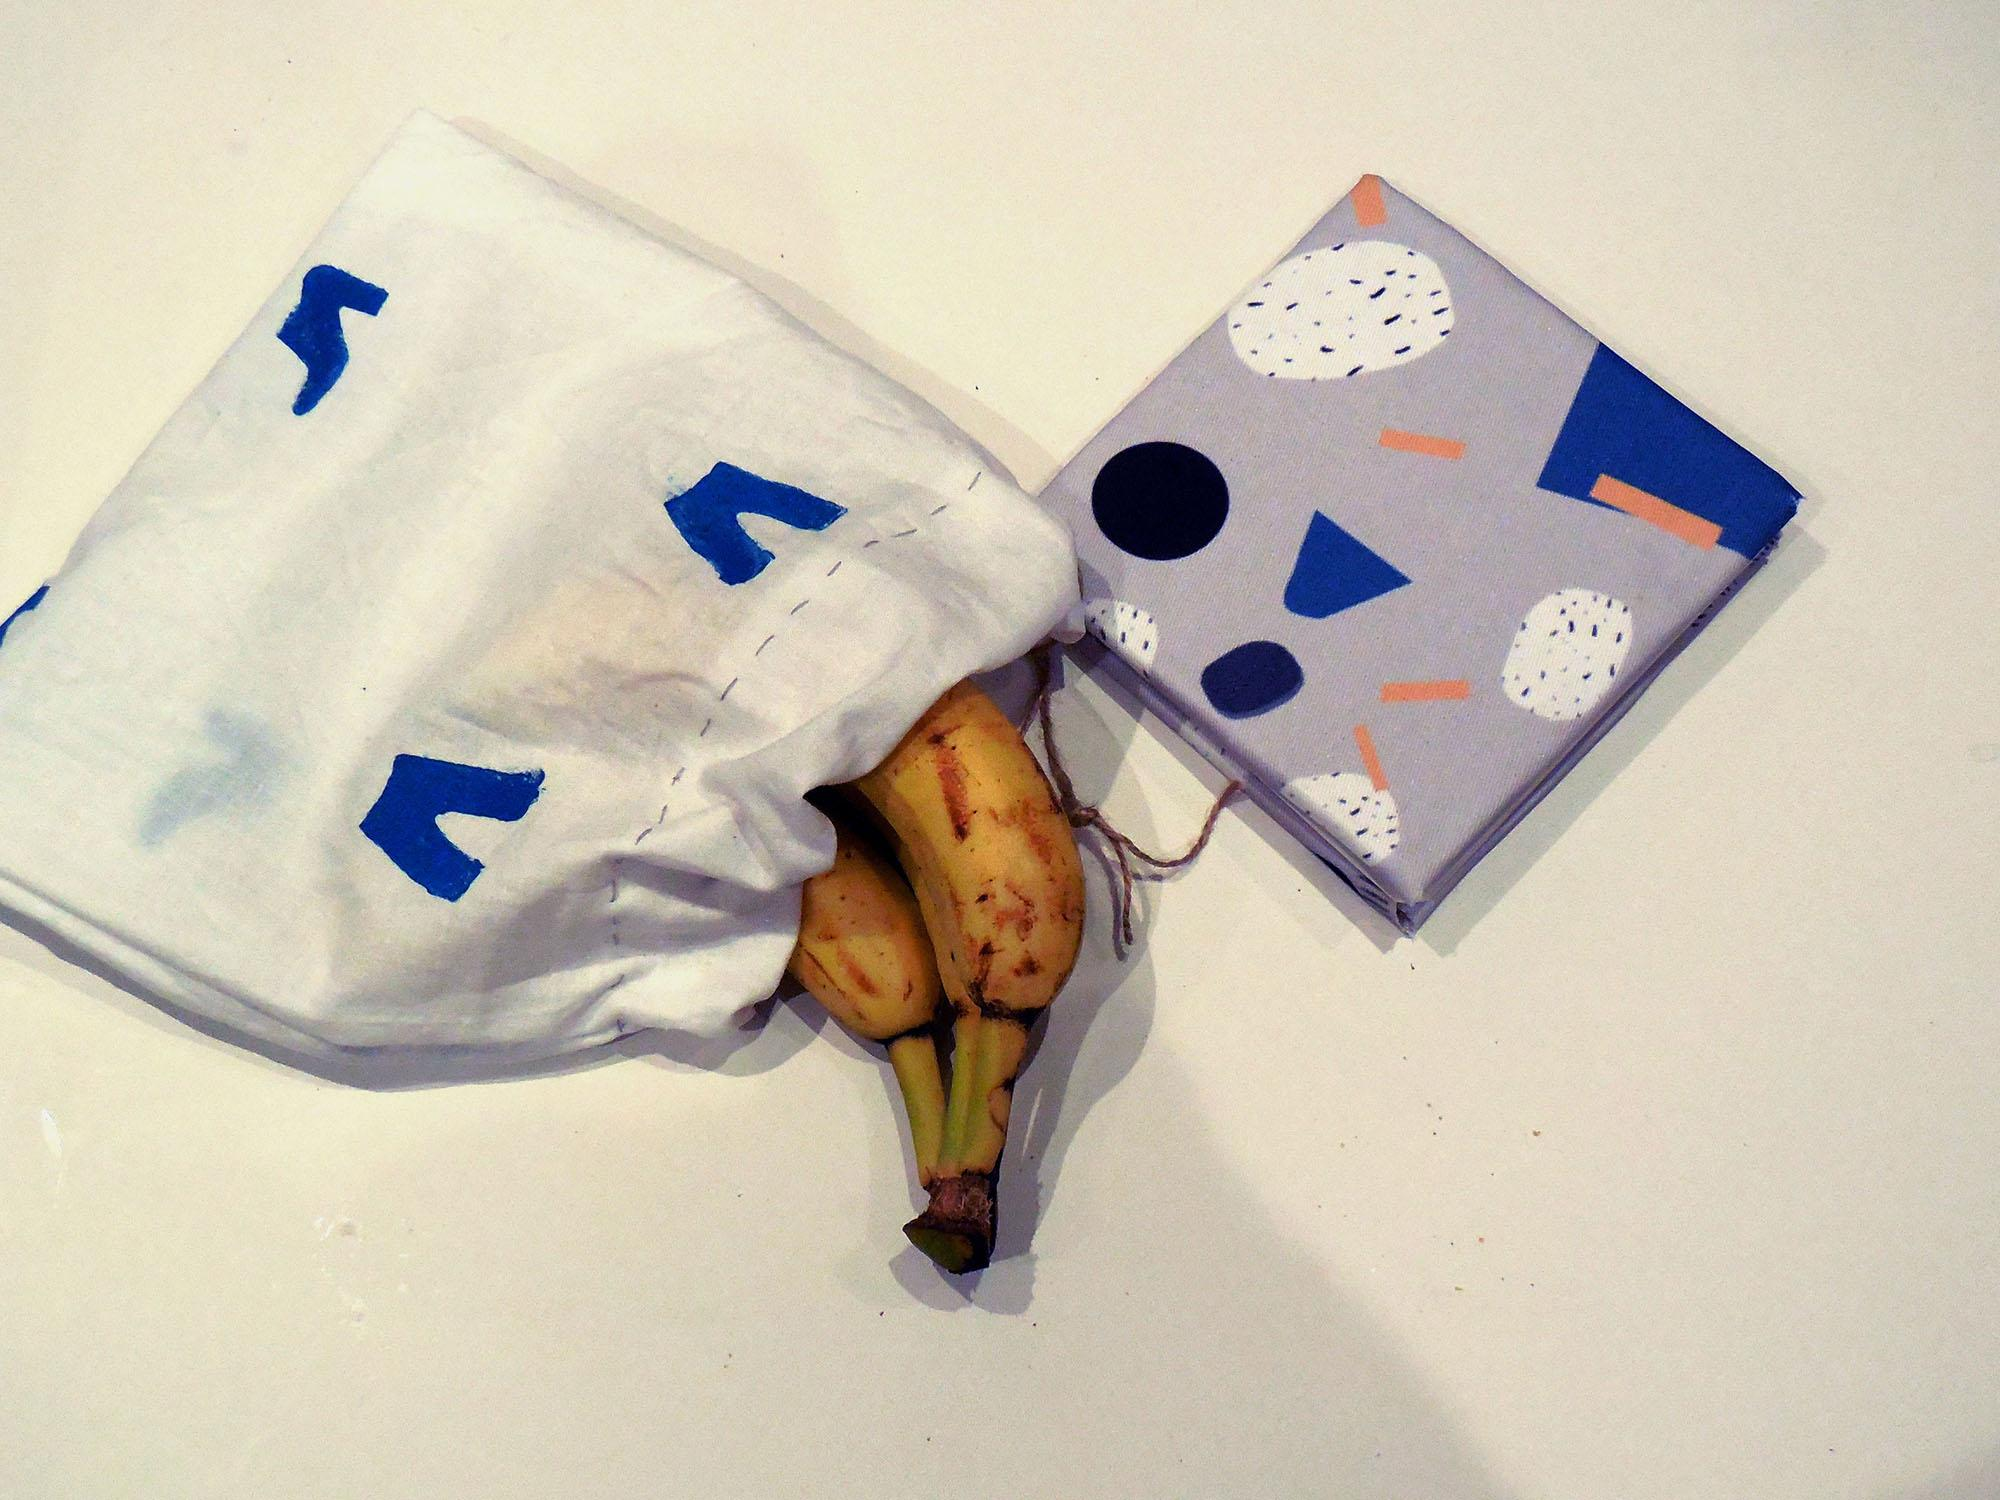 Make your own creations with reusable materials